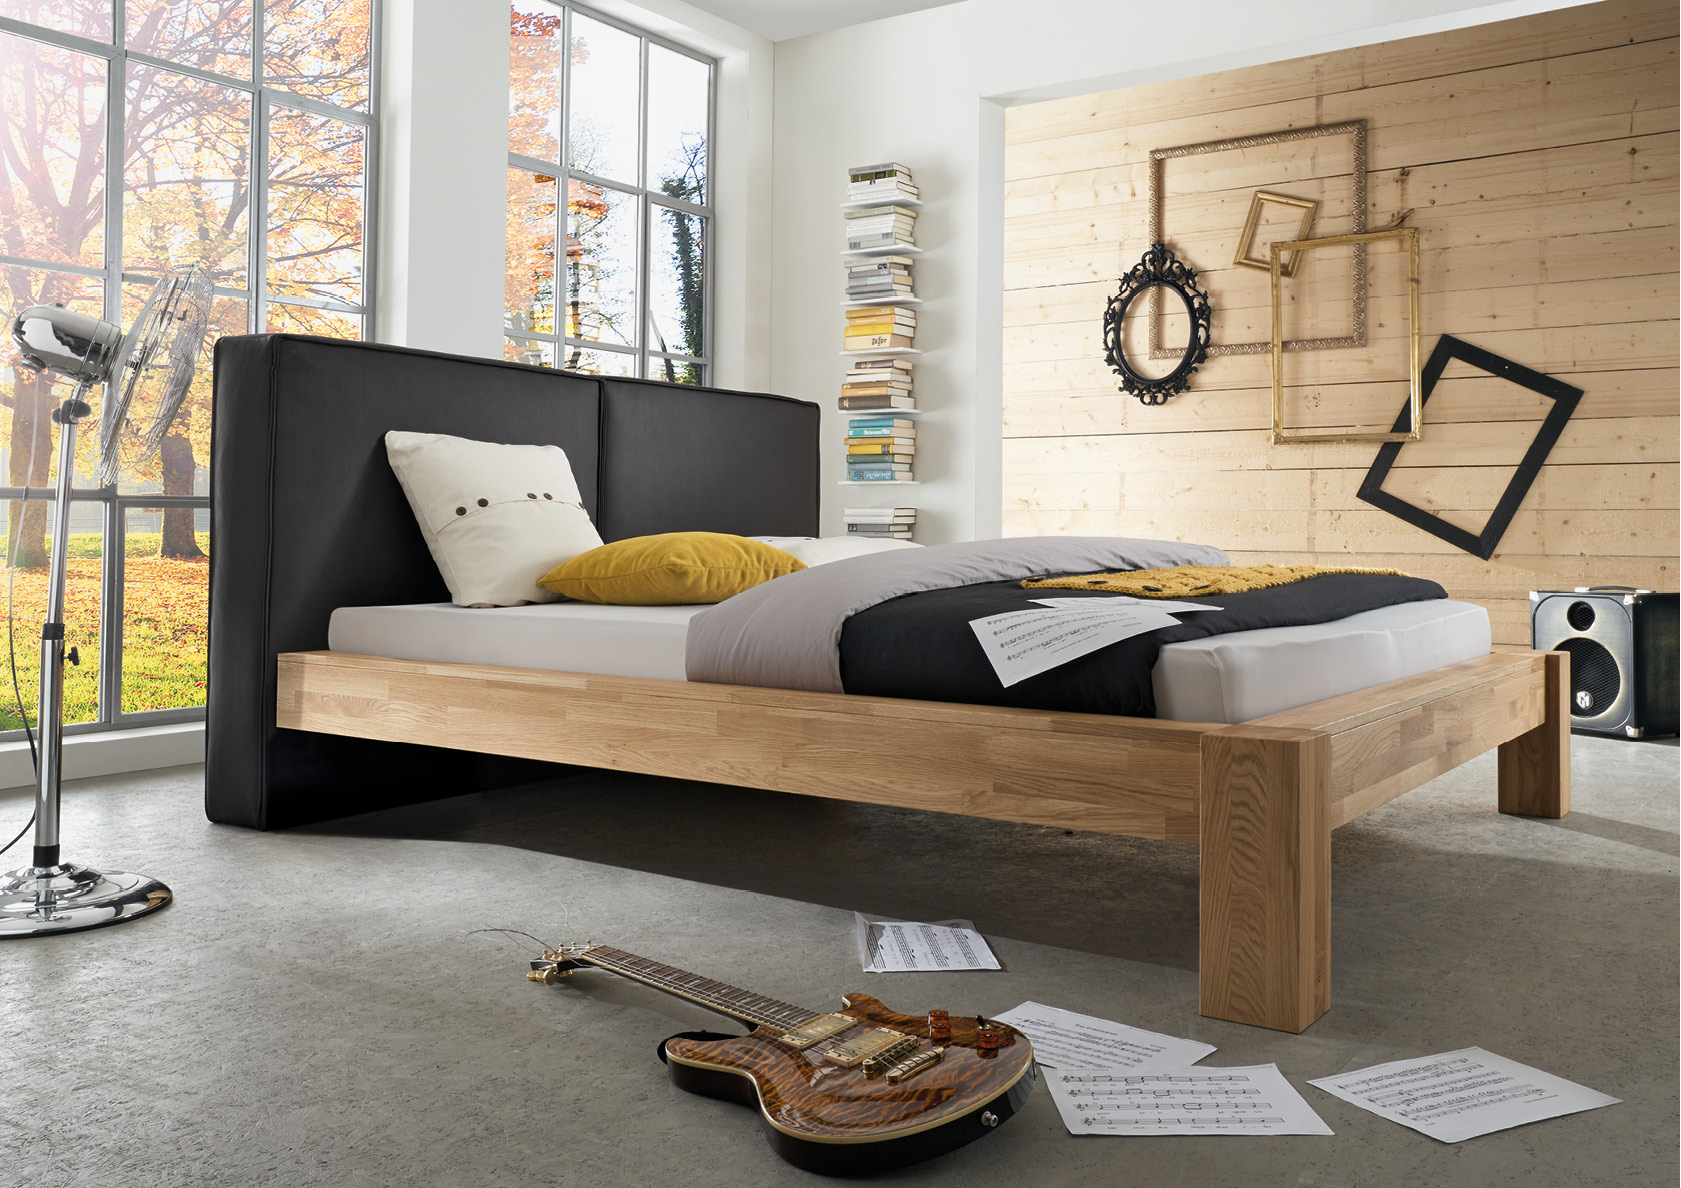 betten m bel gugler gmbh in nast tten. Black Bedroom Furniture Sets. Home Design Ideas